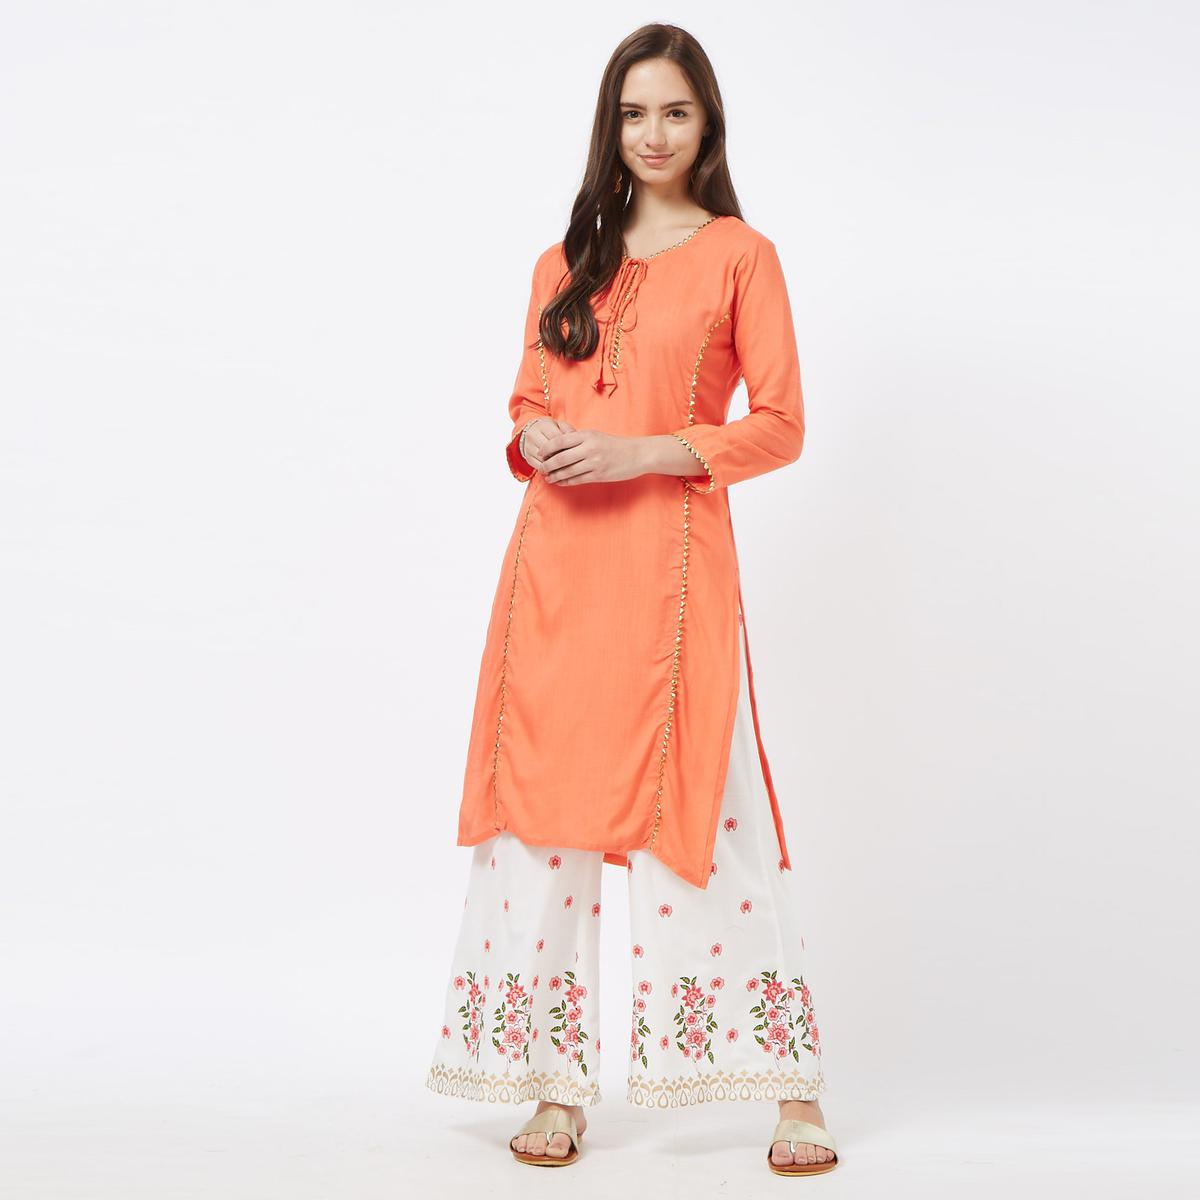 2ed5ec4e24 Buy Entrancing Peach-White Colored Partywear Printed Cotton Palazzo Suit  Online India, Best Prices, Reviews - Peachmode